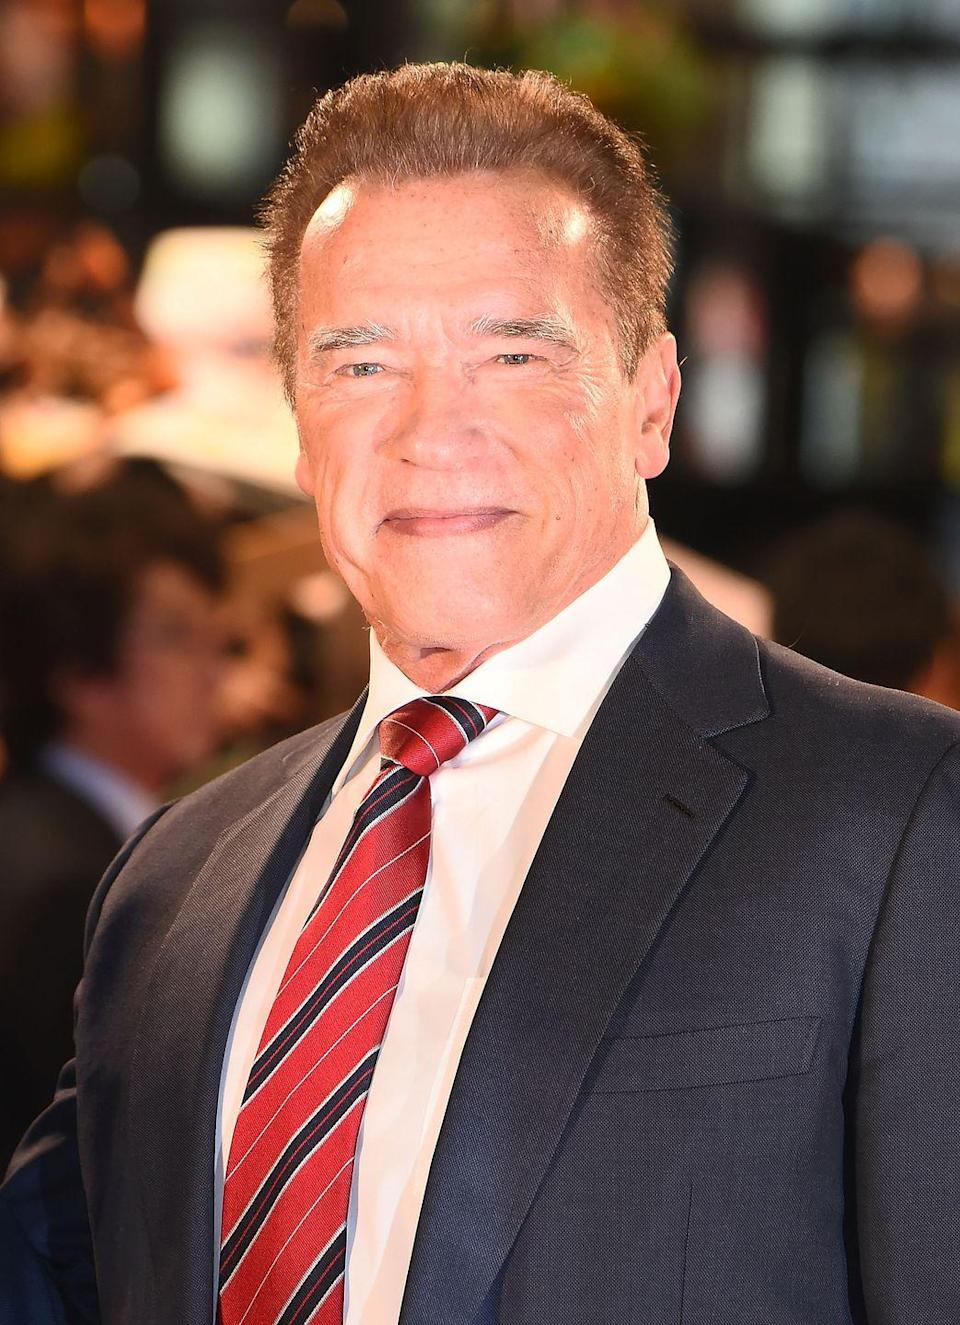 "<p>Now: He may have gained popularity as a bodybuilder, but Schwarzenegger has created a <a href=""https://www.imdb.com/name/nm0000216/"" rel=""nofollow noopener"" target=""_blank"" data-ylk=""slk:blockbuster career"" class=""link rapid-noclick-resp"">blockbuster career </a>as an actor. As the Terminator and Conan the Barbarian, Schwarzenegger even extended into politics in his infamous stint as California governor.</p>"